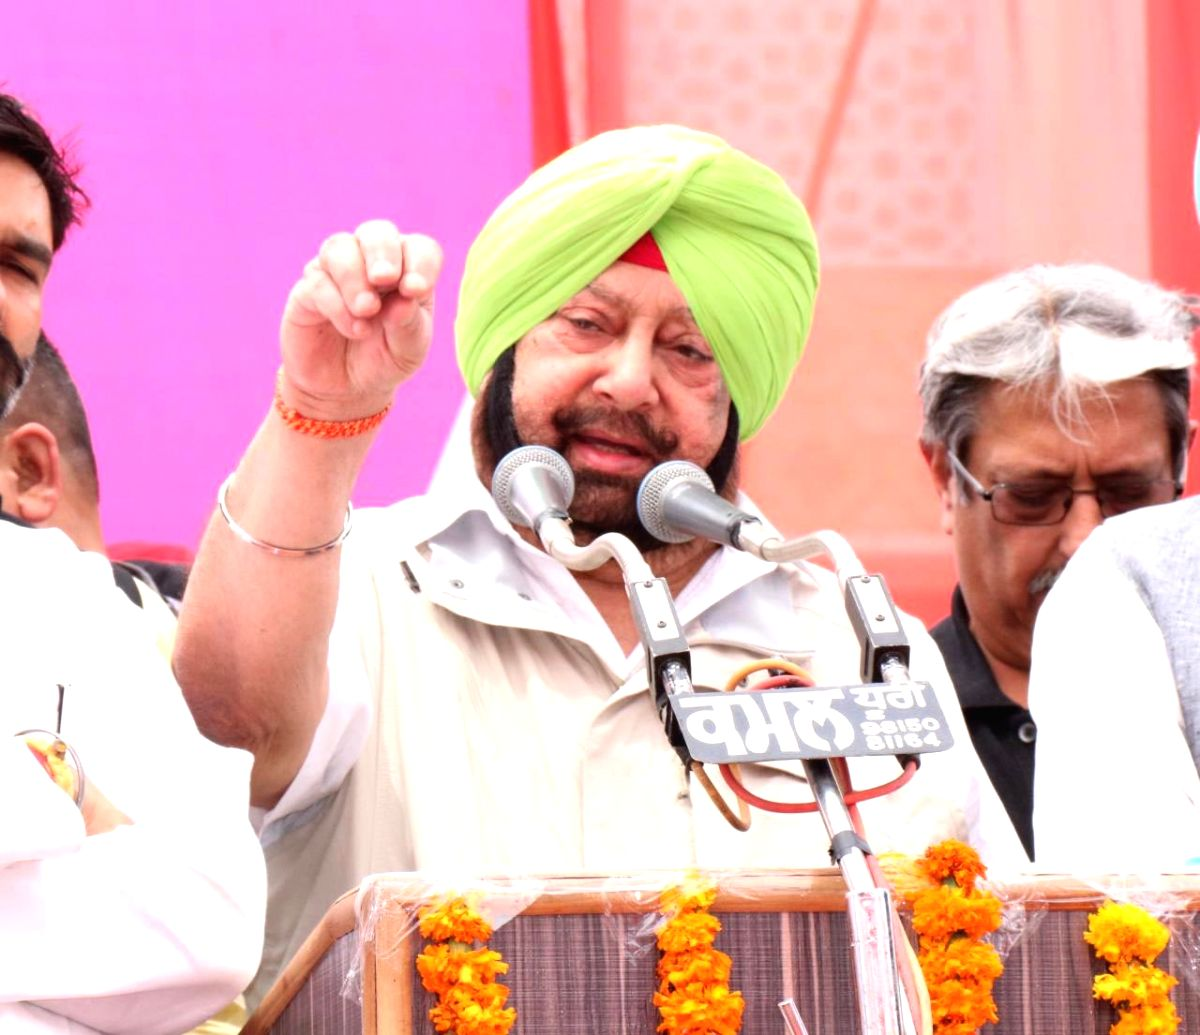 Sangrur: Punjab Chief Minister Captain Amarinder Singh addresses a public rally ahead of the 2019 Lok Sabha polls, in Punjab's Sangrur, on April 24, 2019.